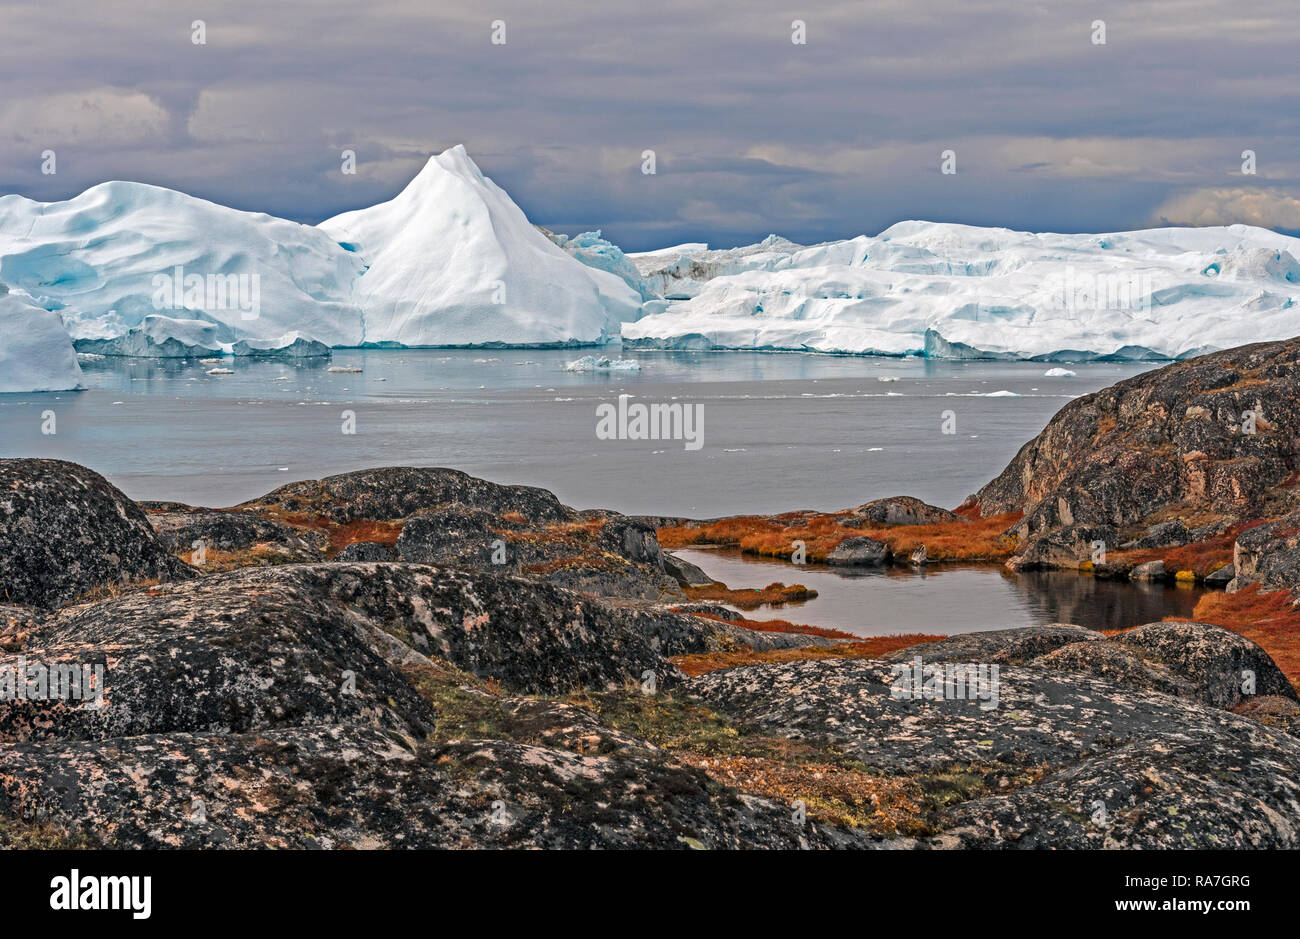 Colorful Coastlands along an Arctic Shore near the Icefjord of Ilulissat, Greenland - Stock Image